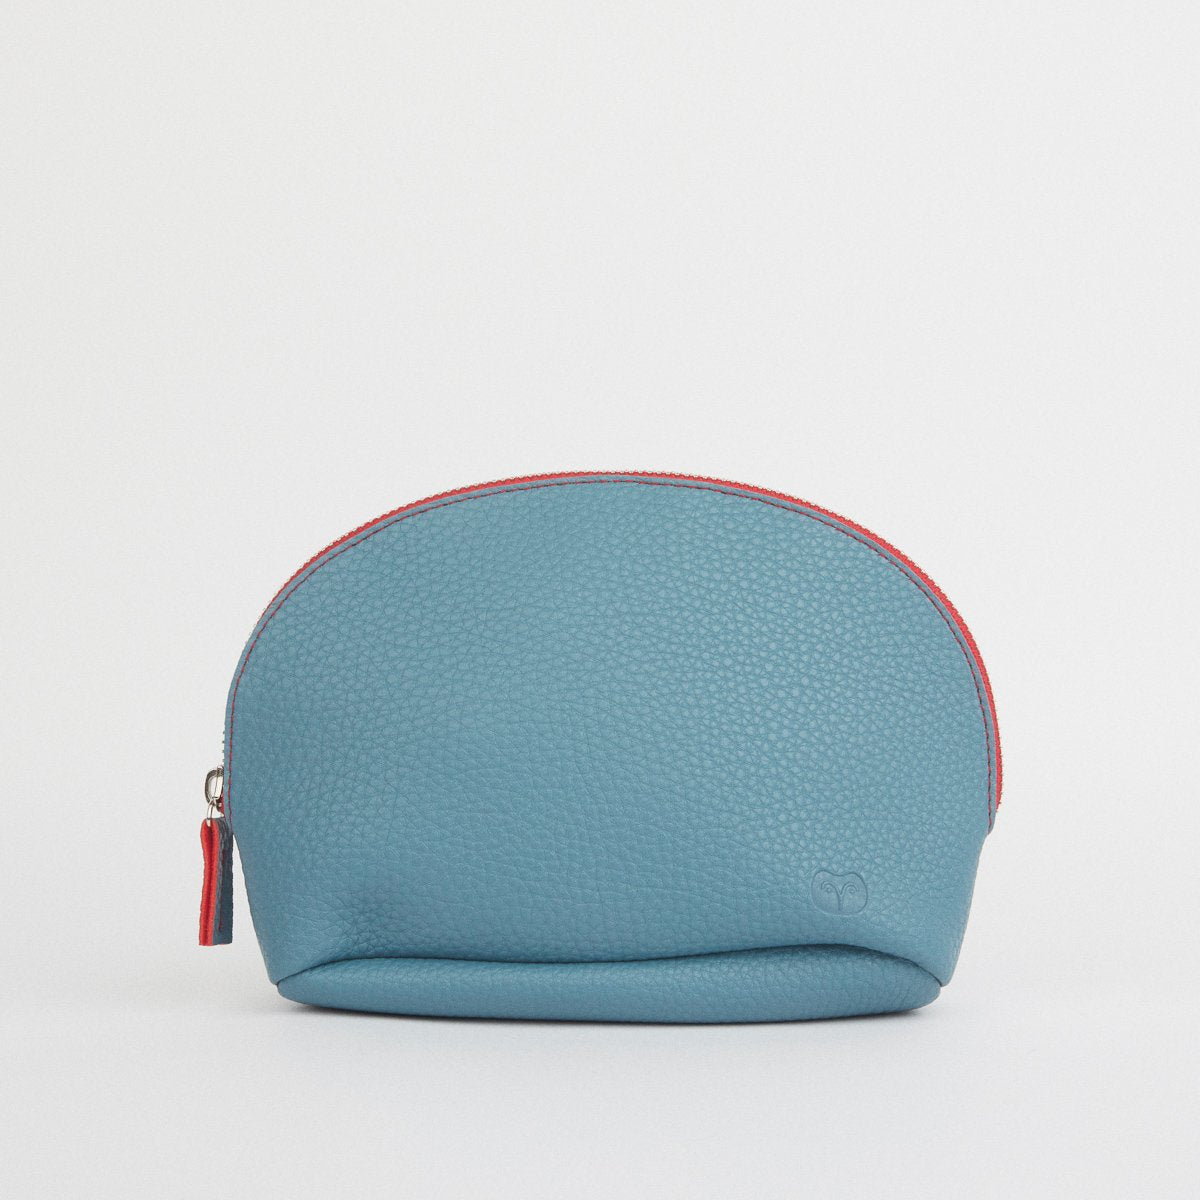 Goodeehoo Marsh Makeup Pouch Teal